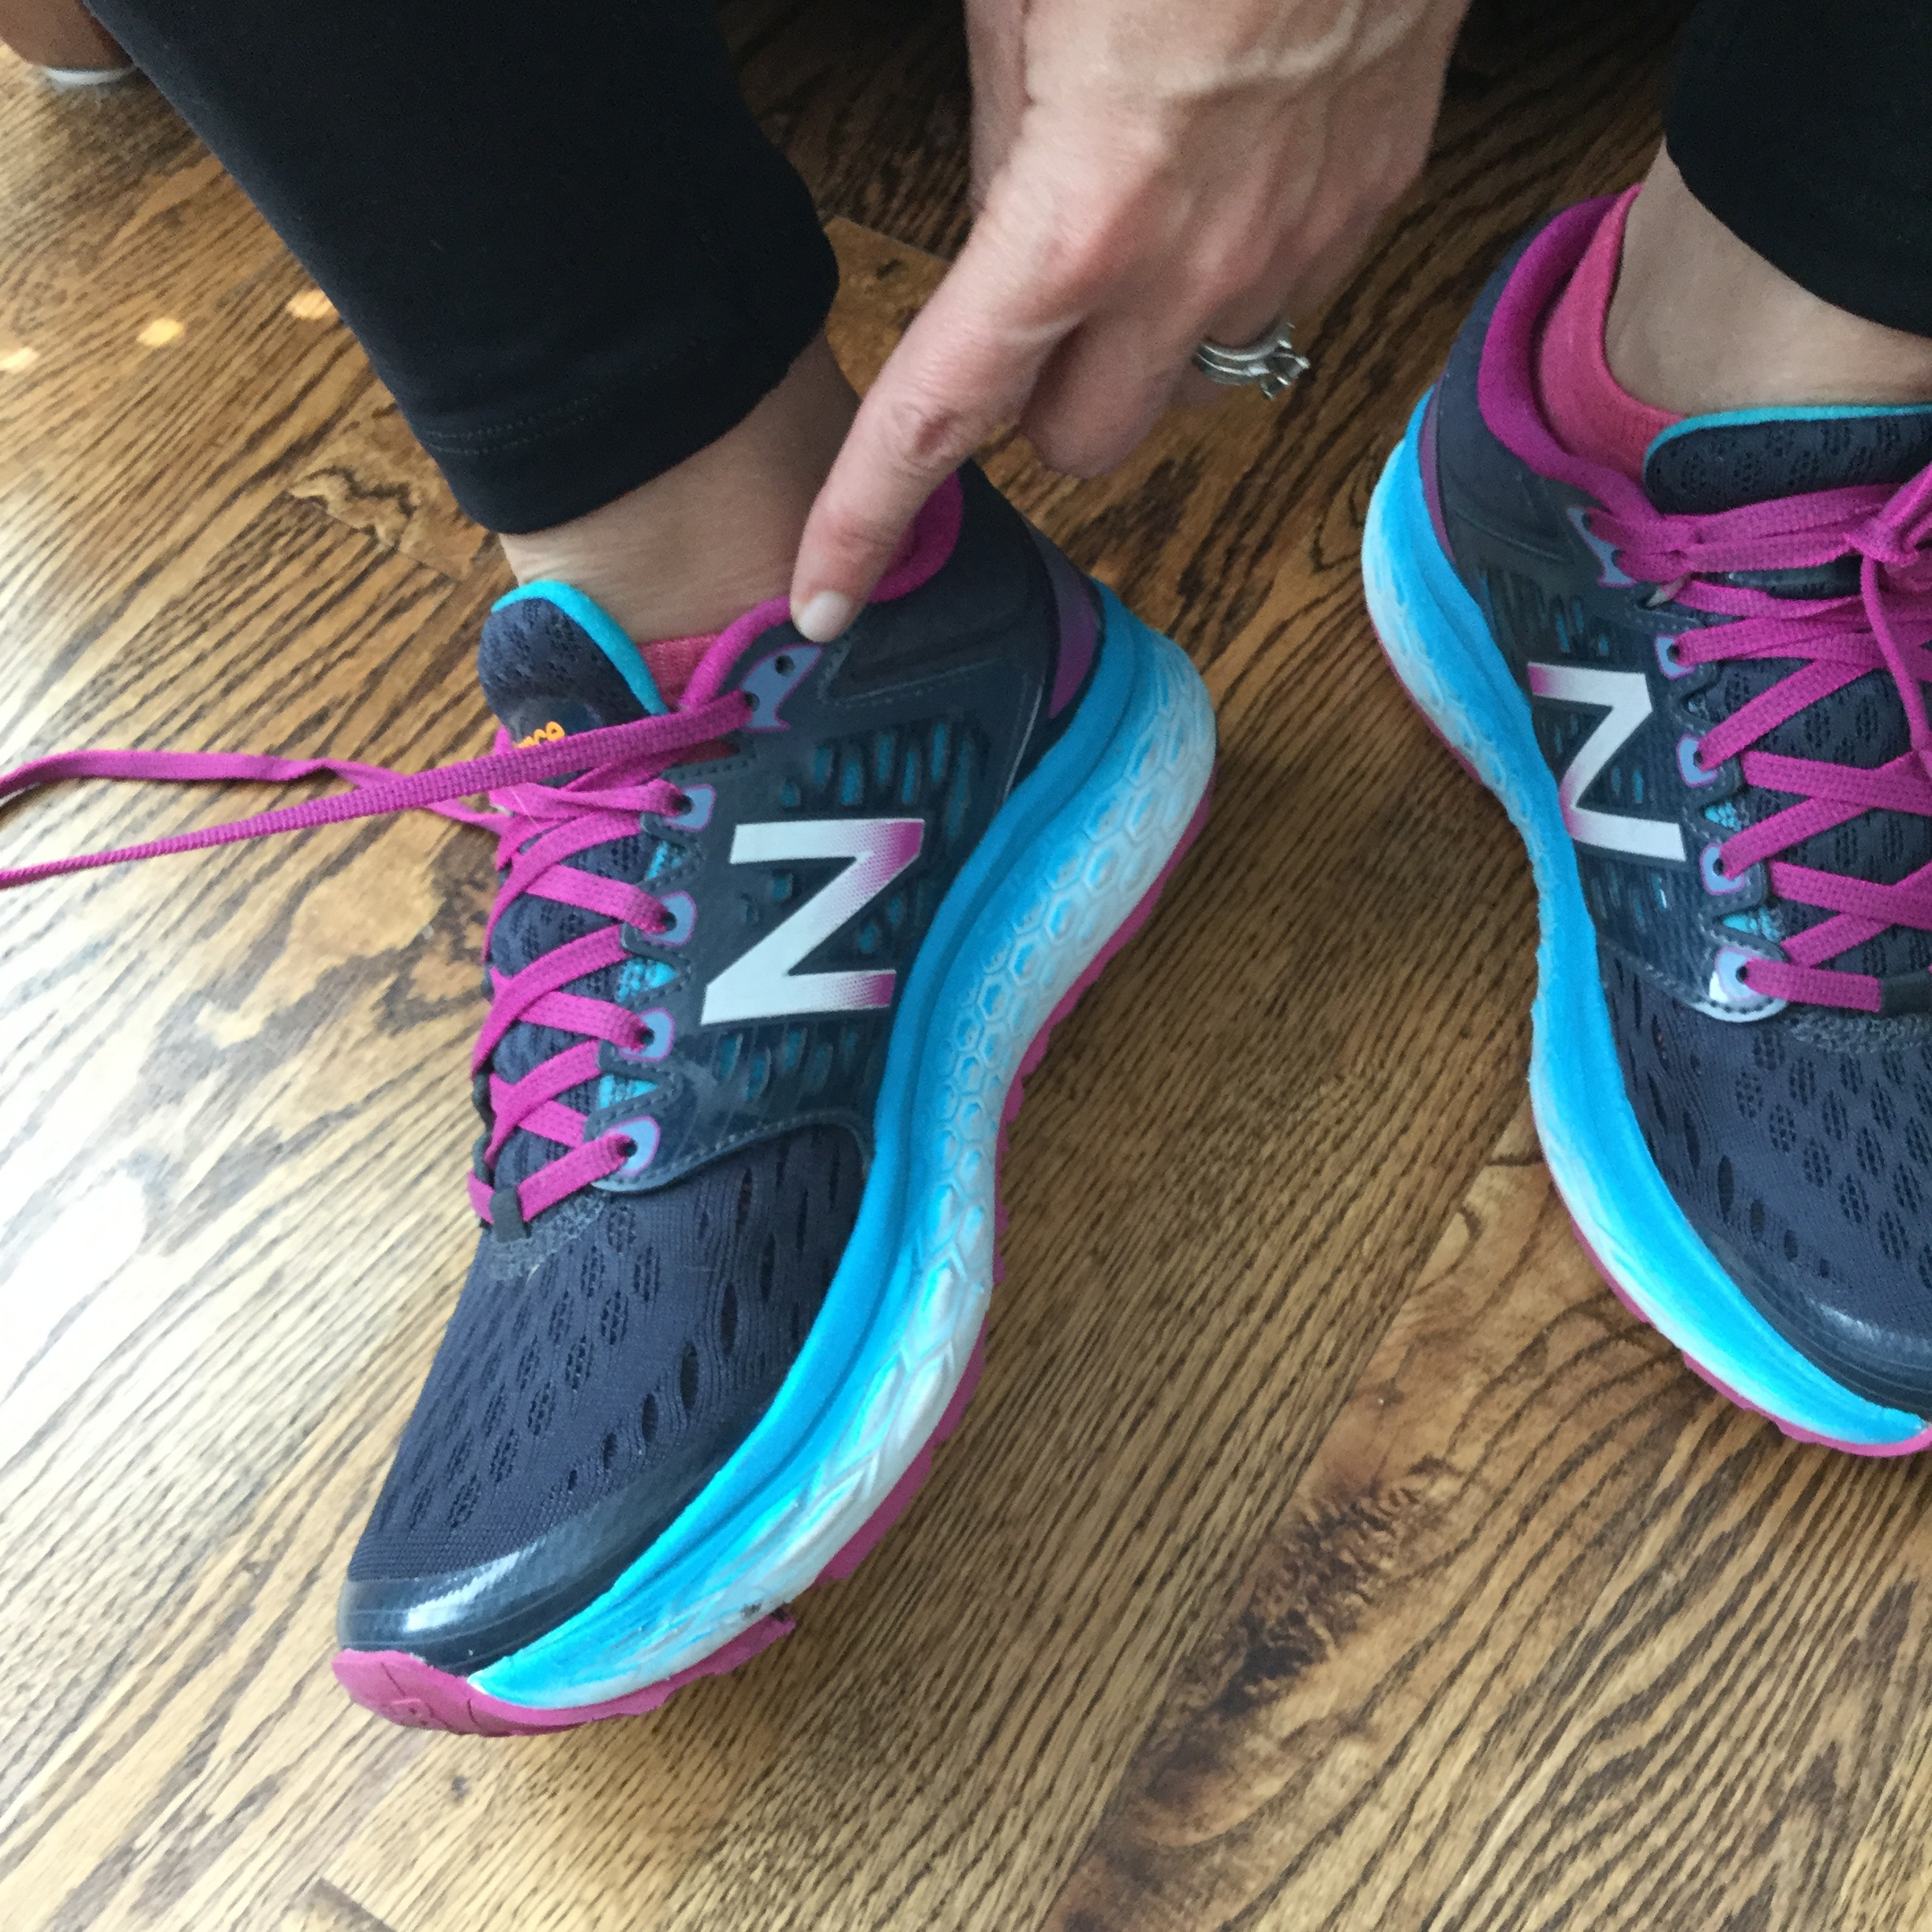 How To Tie Your Running Shoes For Ankle Support And